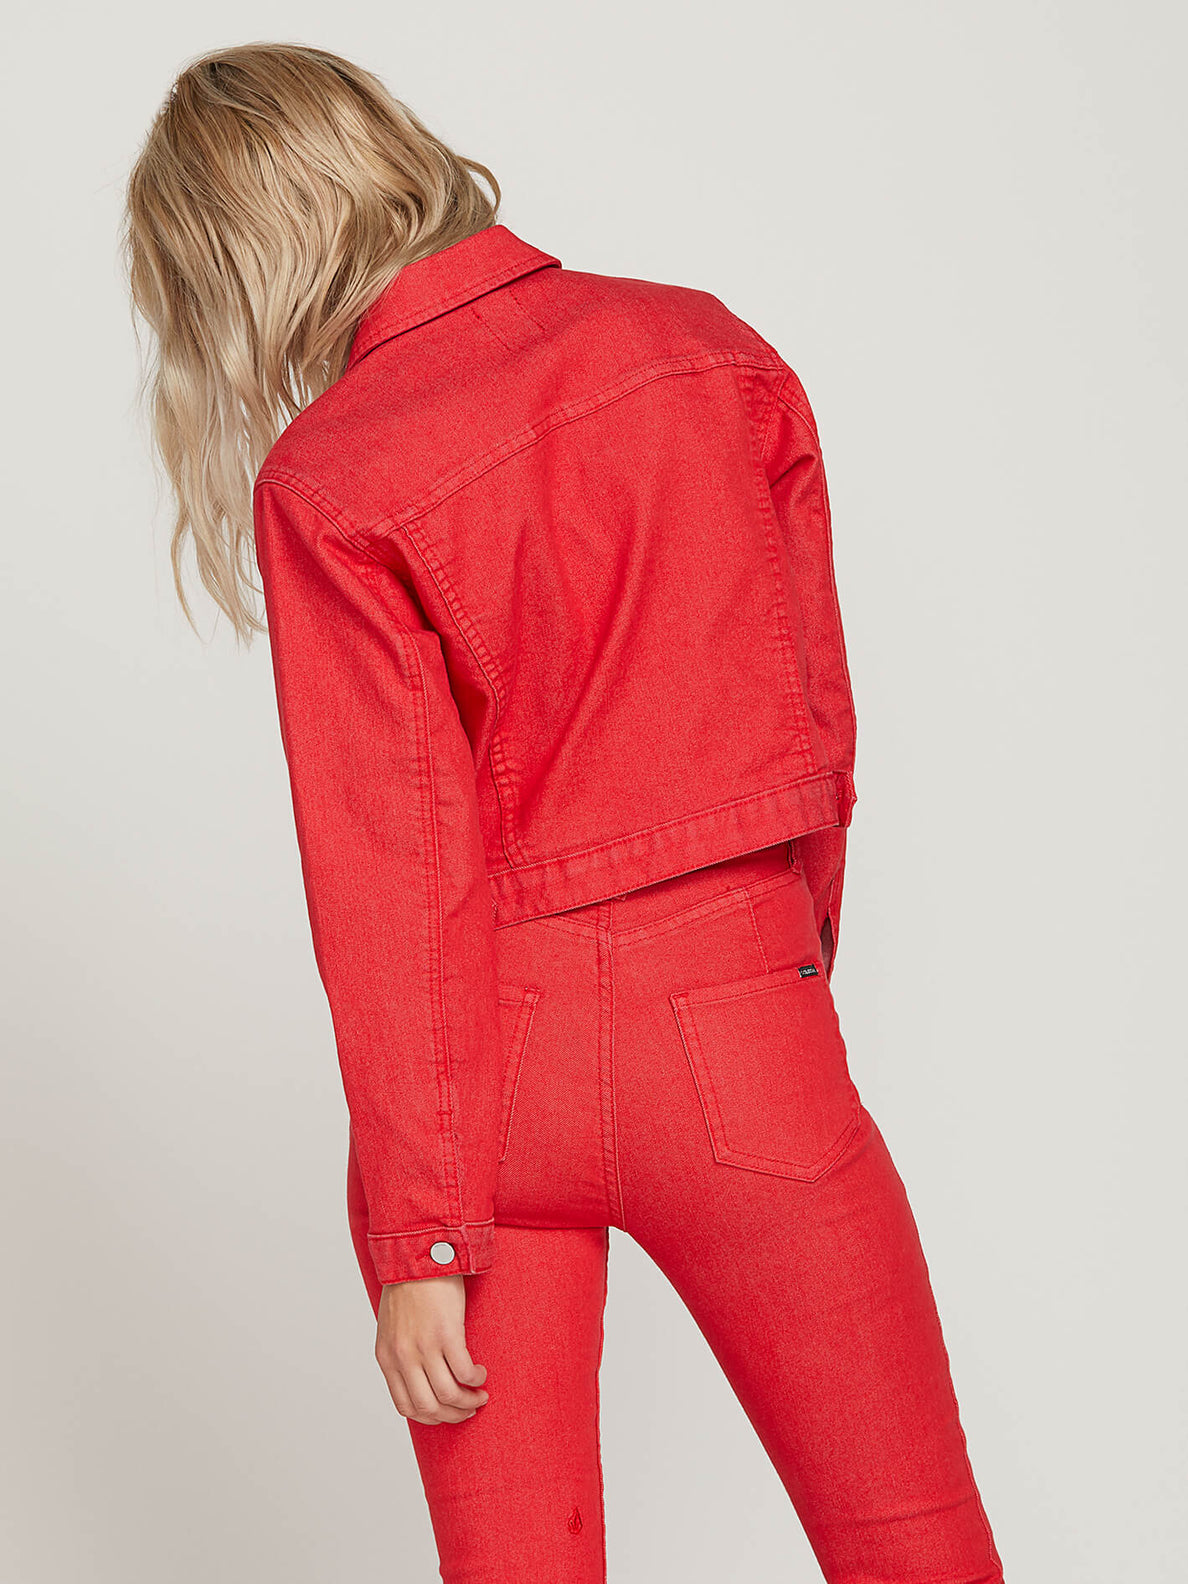 Gmj Shrunken Jacket In Red, Back View